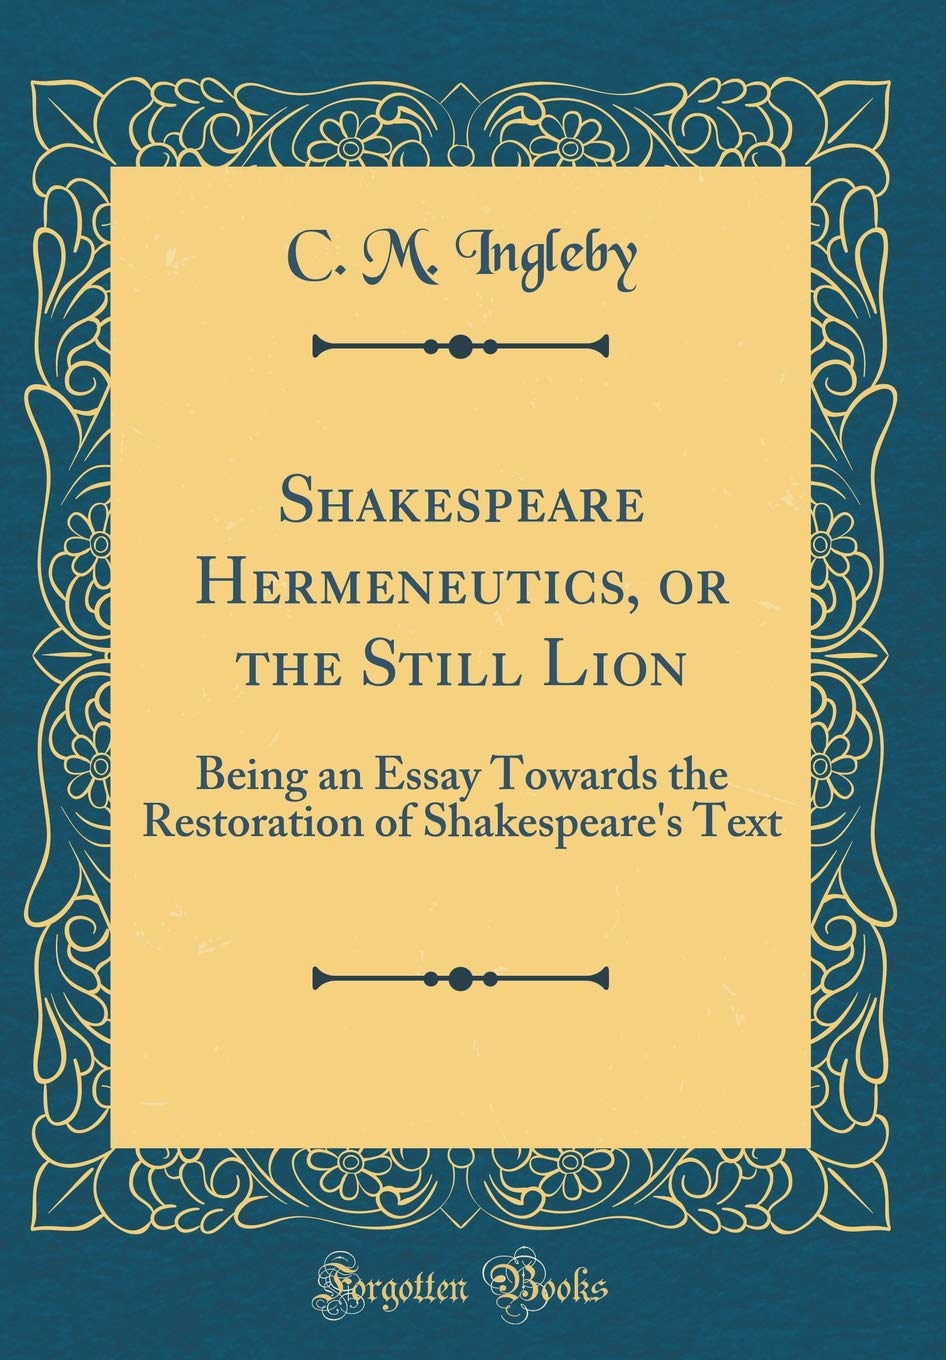 Amazoncom Shakespeare Hermeneutics Or The Still Lion Being An  Amazoncom Shakespeare Hermeneutics Or The Still Lion Being An Essay  Towards The Restoration Of Shakespeares Text Classic Reprint    Essay Paper Help also High School Essay Samples  Book Review Writing Service